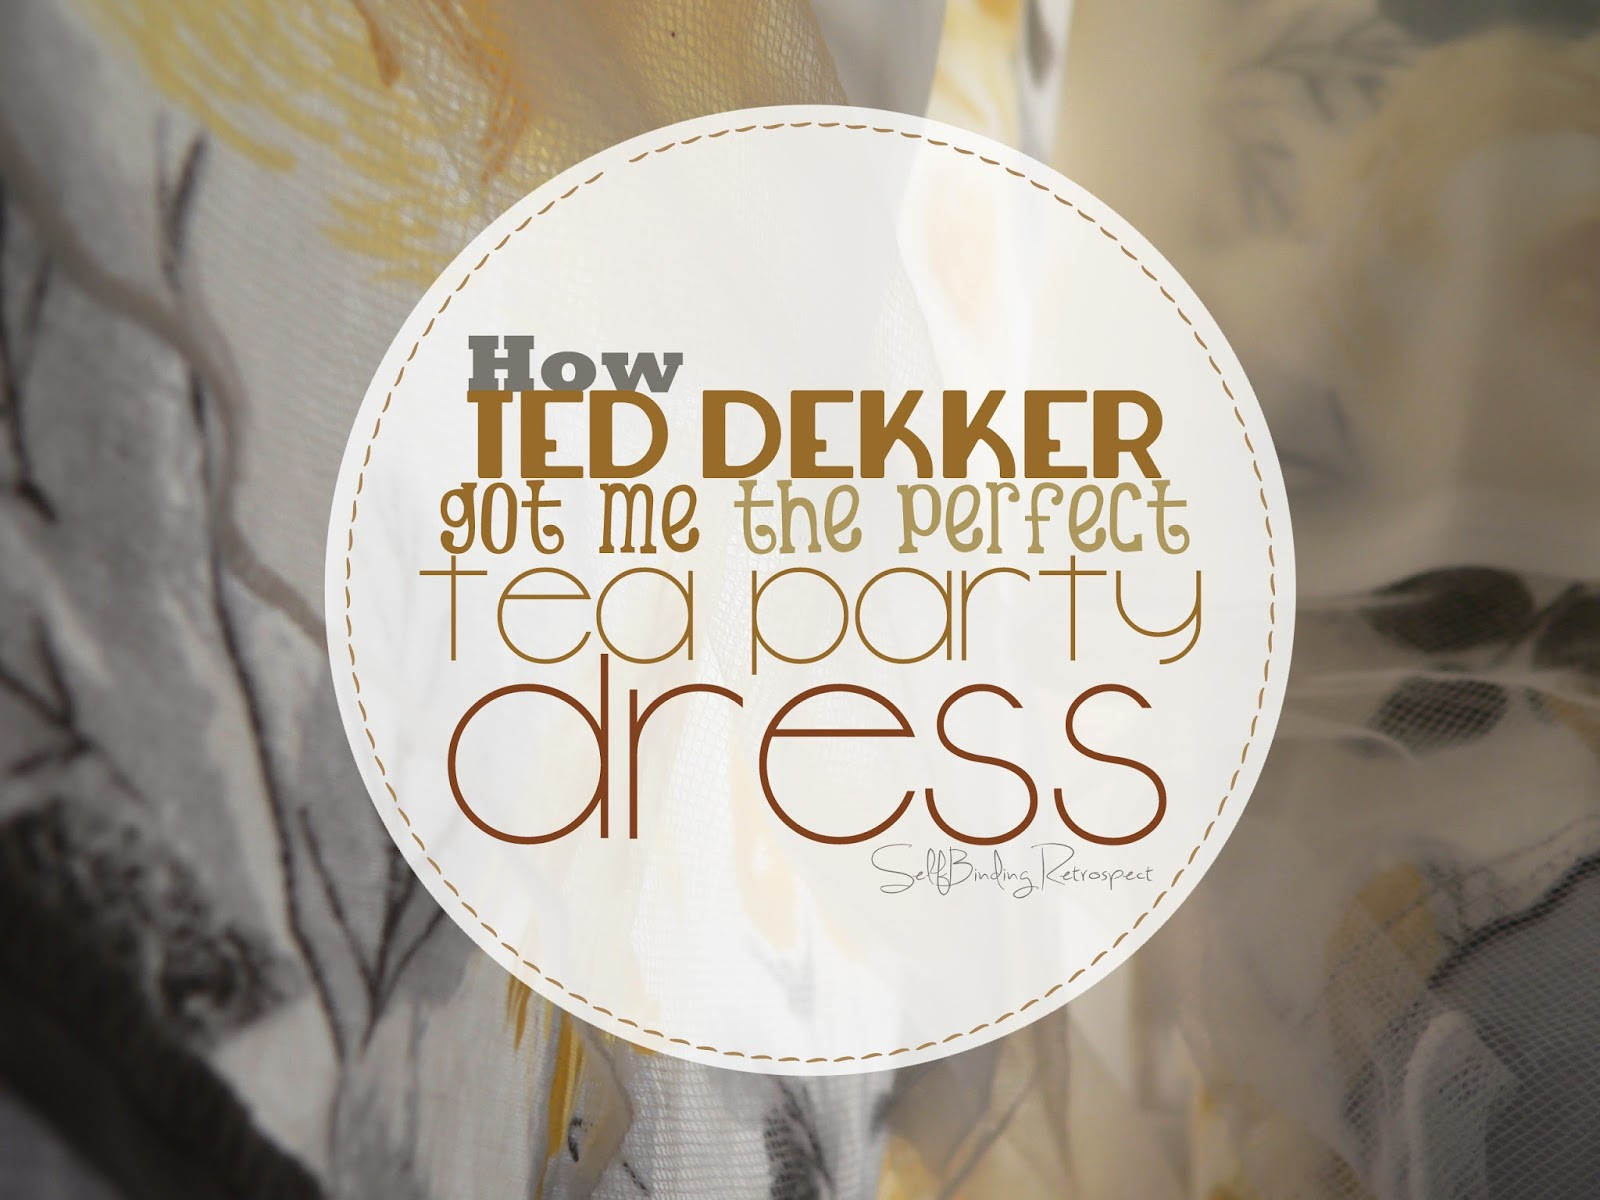 How Ted Dekker Got Me The Perfect Tea Party Dress - SelfBinding Retrospect by Alanna Rusnak